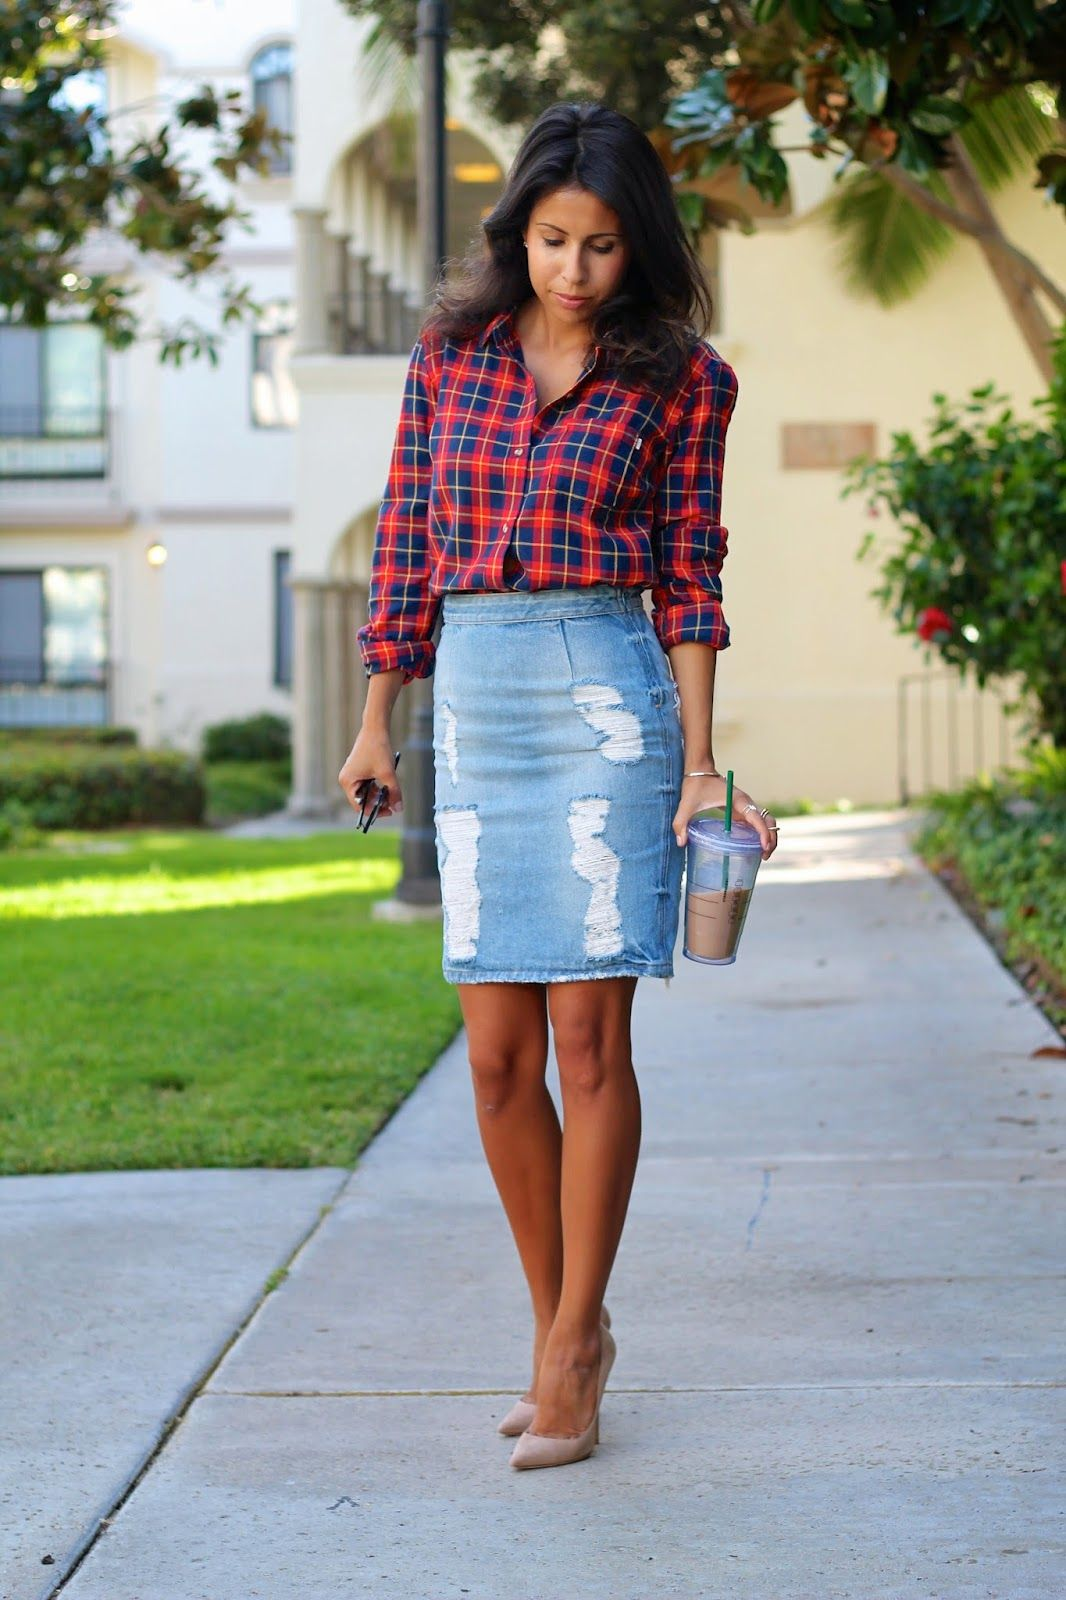 how to style flannel shirt, jimmy choo shoes, denim skirt